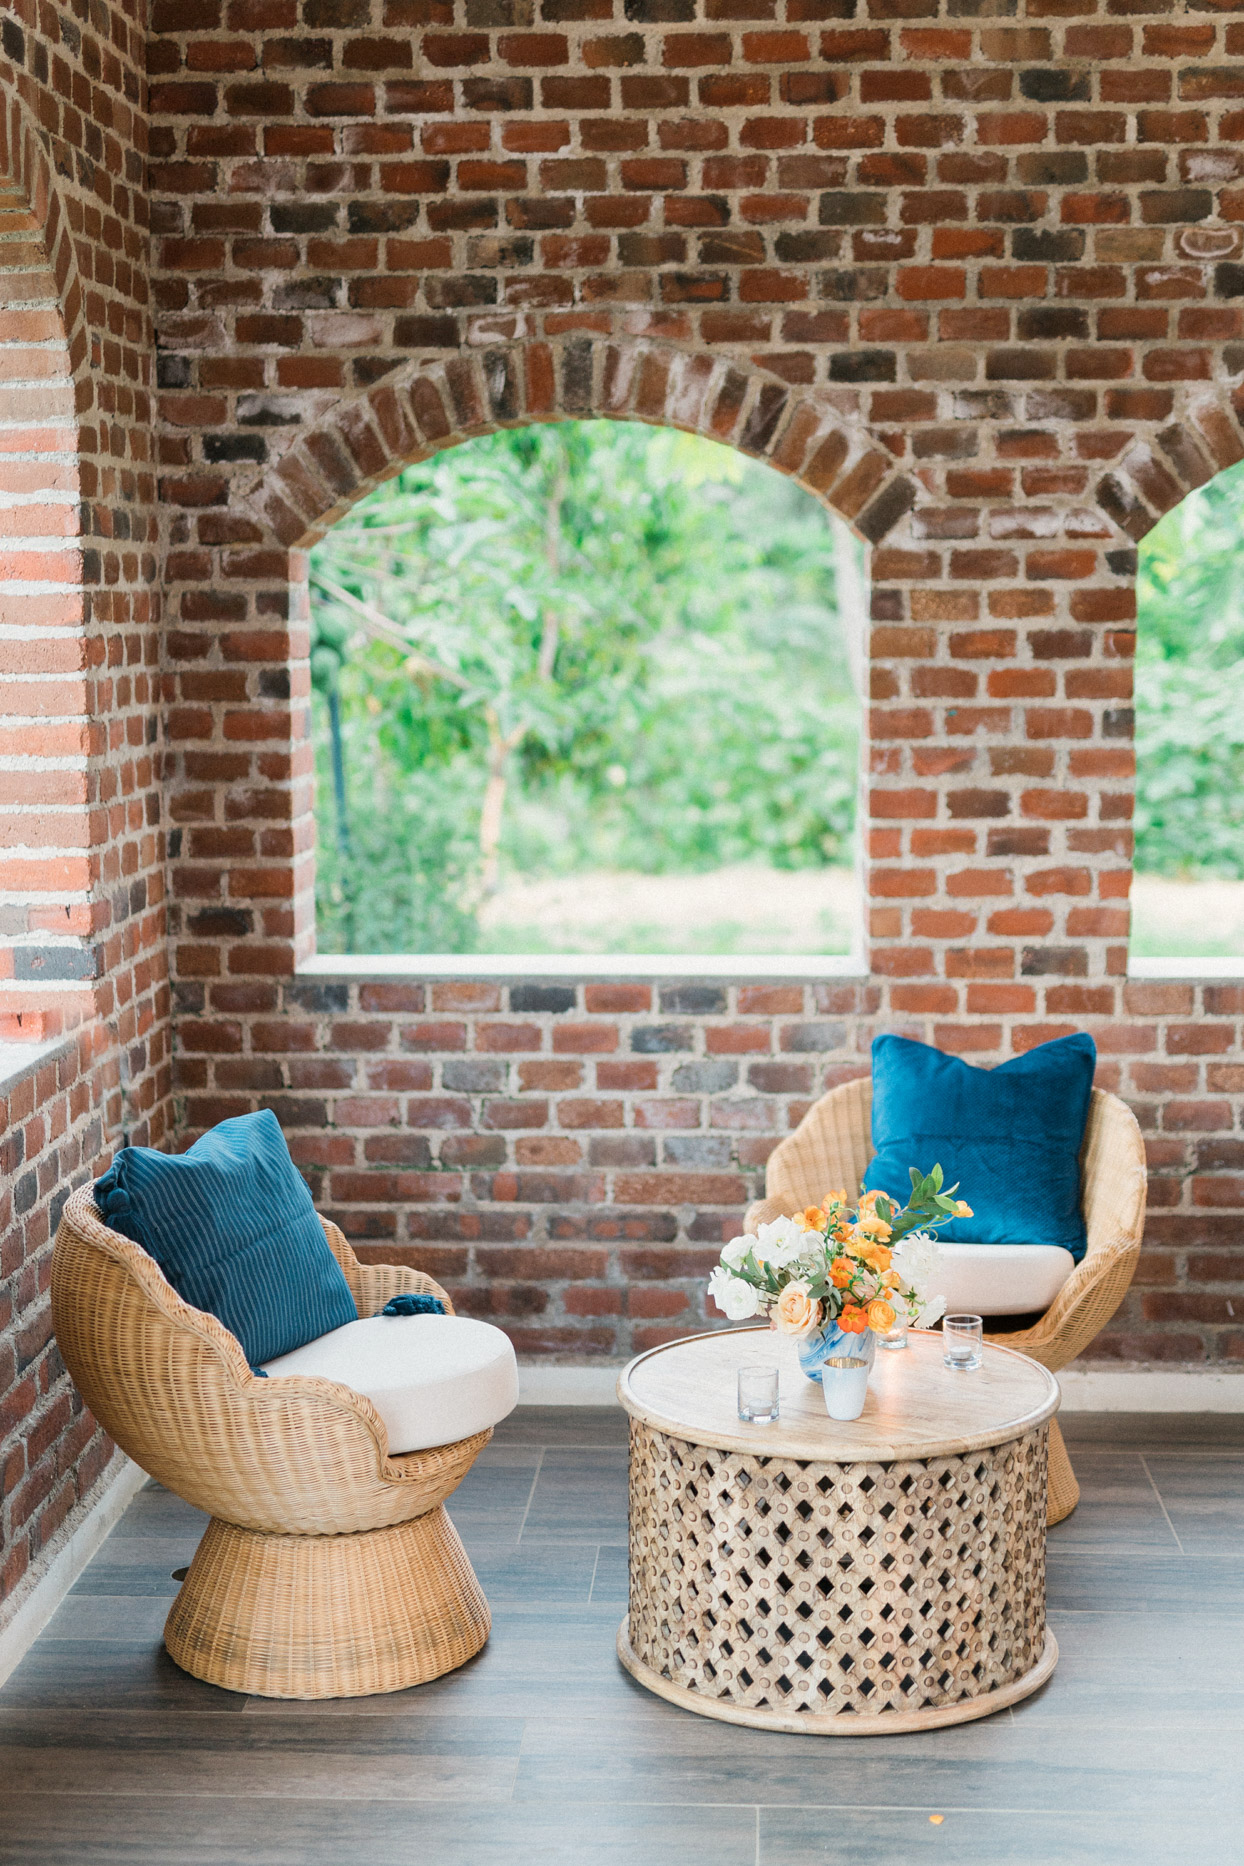 wicker chairs and table in wedding lounge area